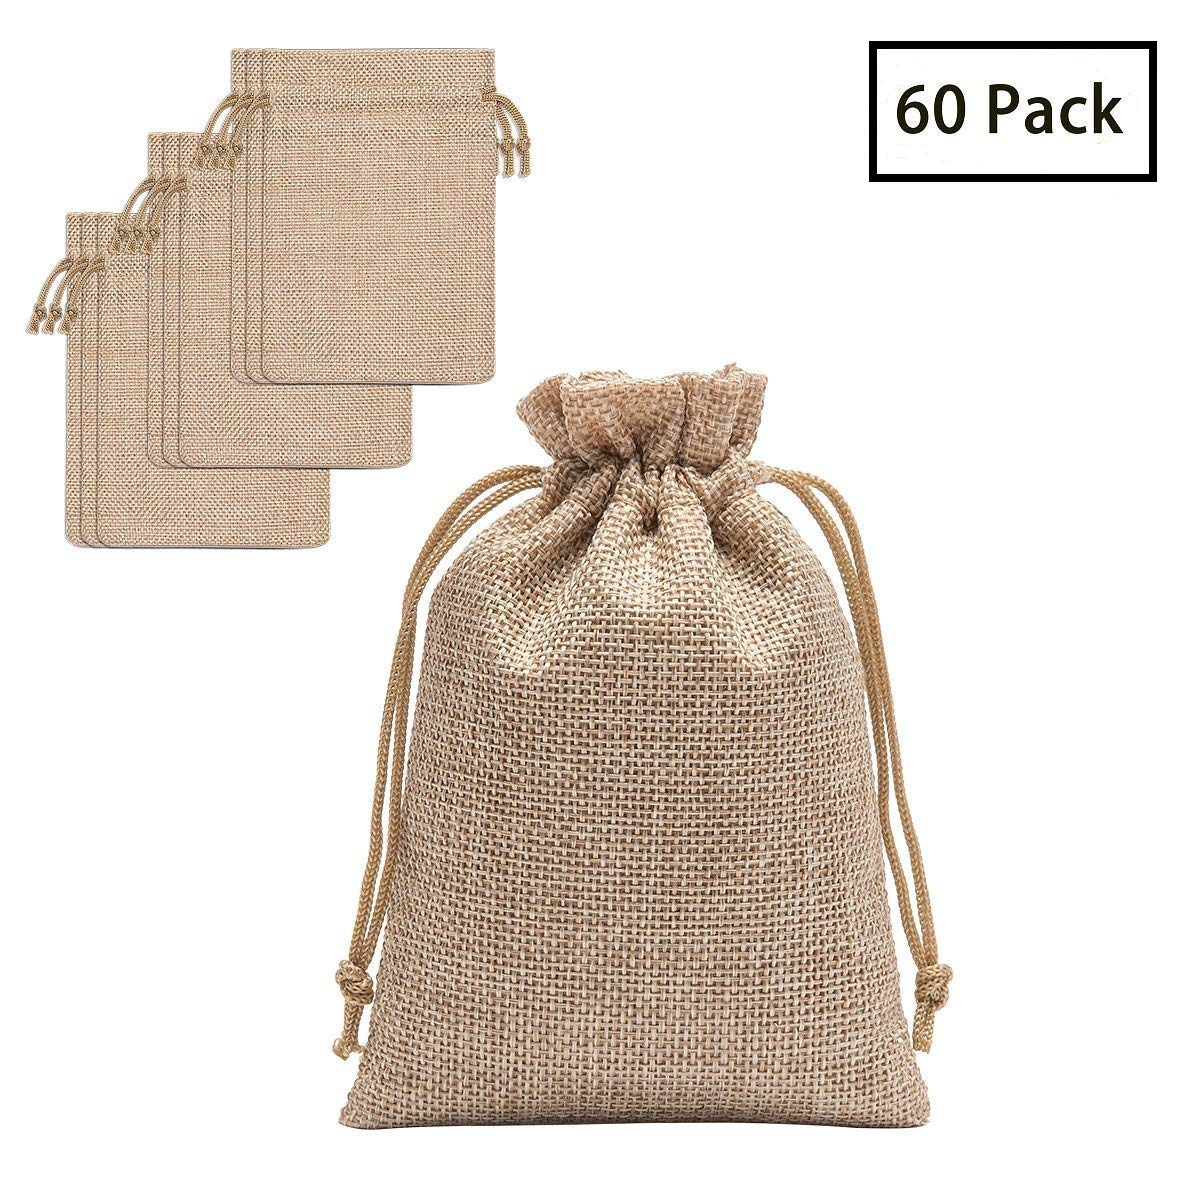 60 Pieces Burlap Bags with Drawstring - 5.3x3.8 inch Drawstring Gift Bags Jewelry Pouch for Wedding Party and DIY Craft